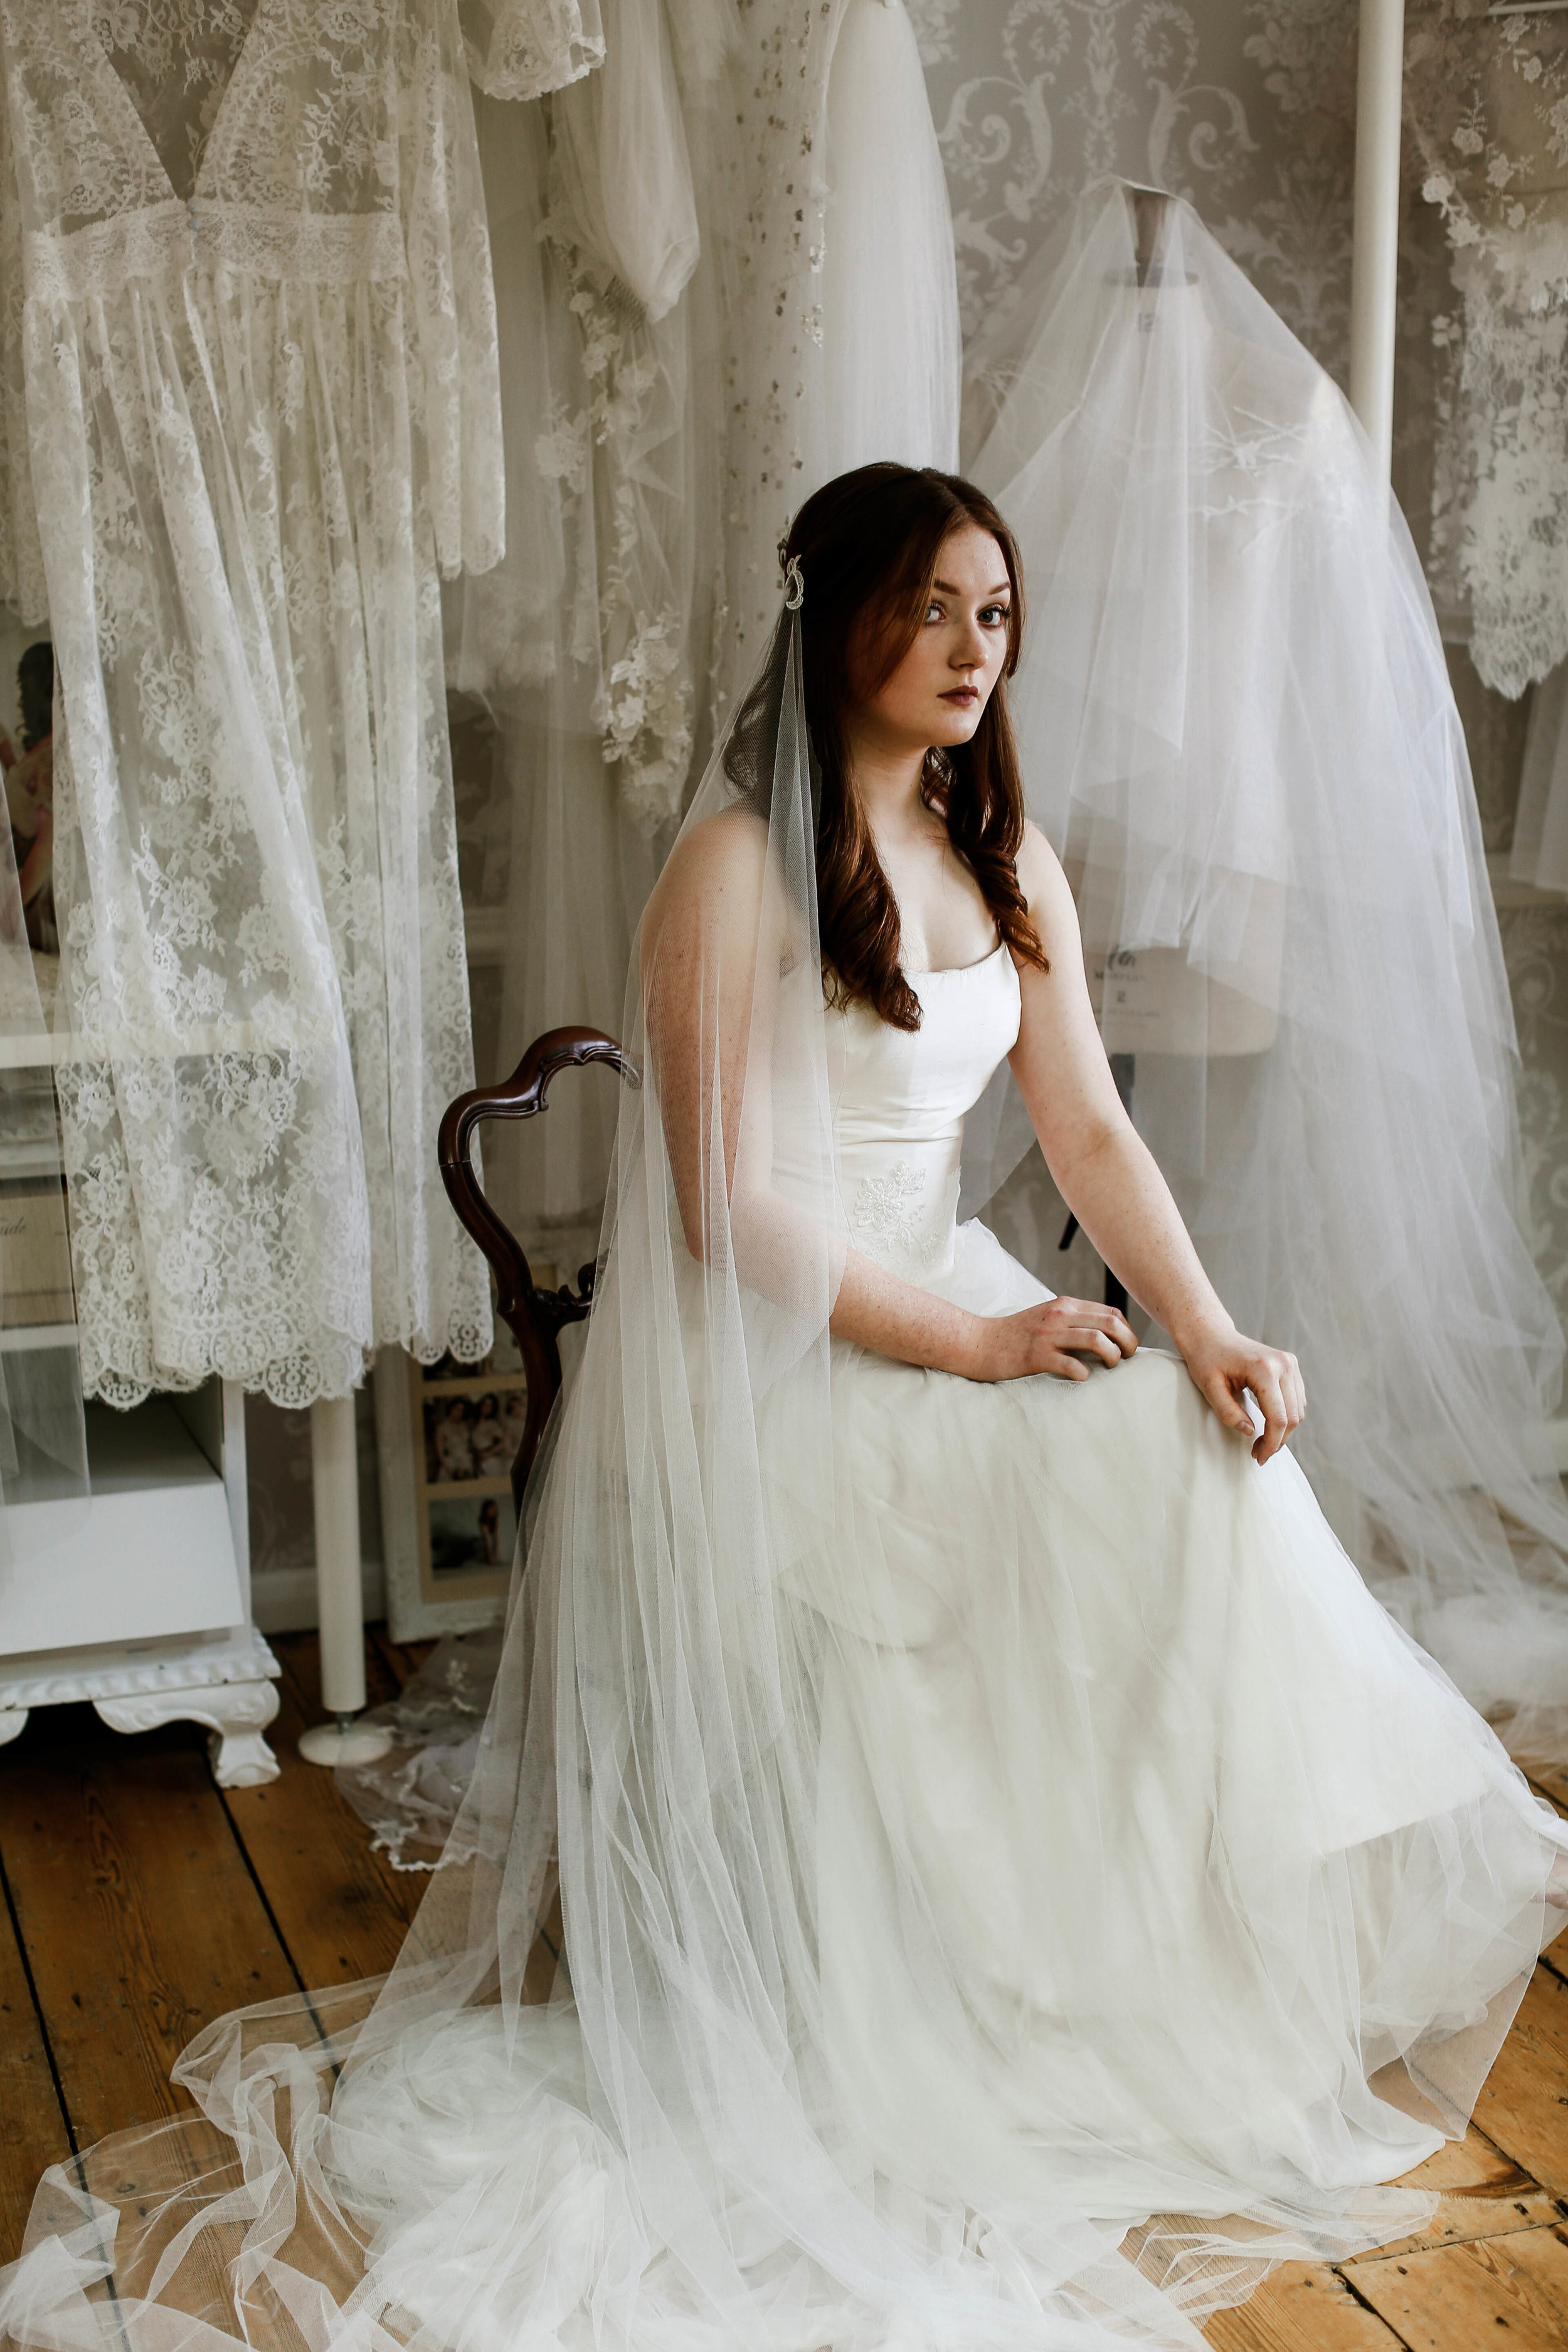 lace couture wedding veil, made to order in Truro, Cornwall, UK